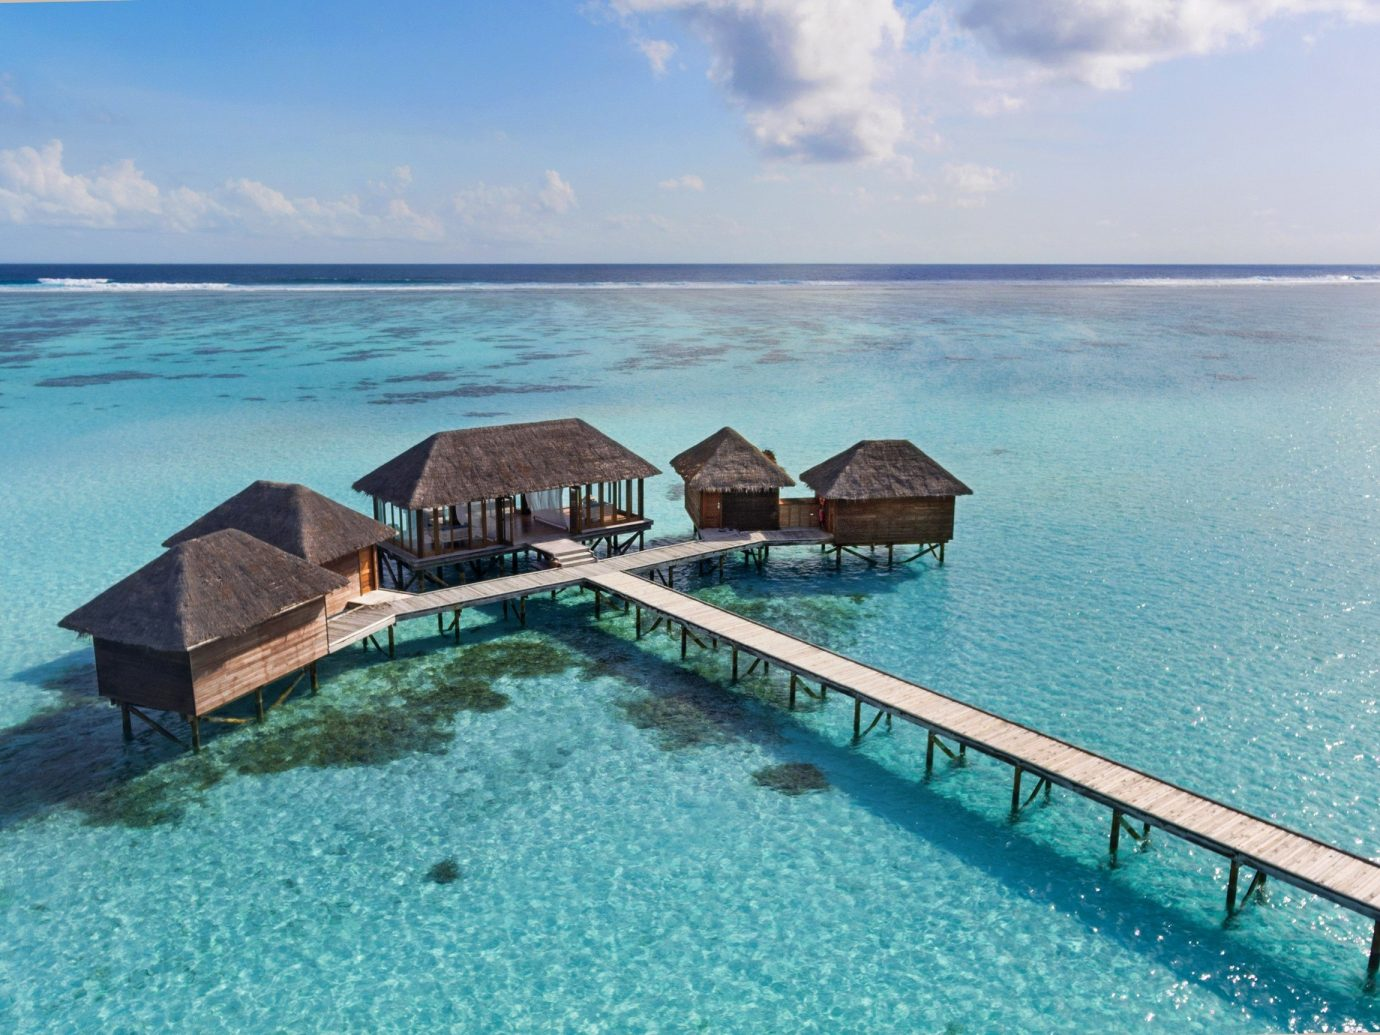 asia Beach Hotels Islands Maldives News Sea coastal and oceanic landforms Ocean Island Lagoon vacation swimming pool caribbean tropics islet sky Resort Coast tourism bay